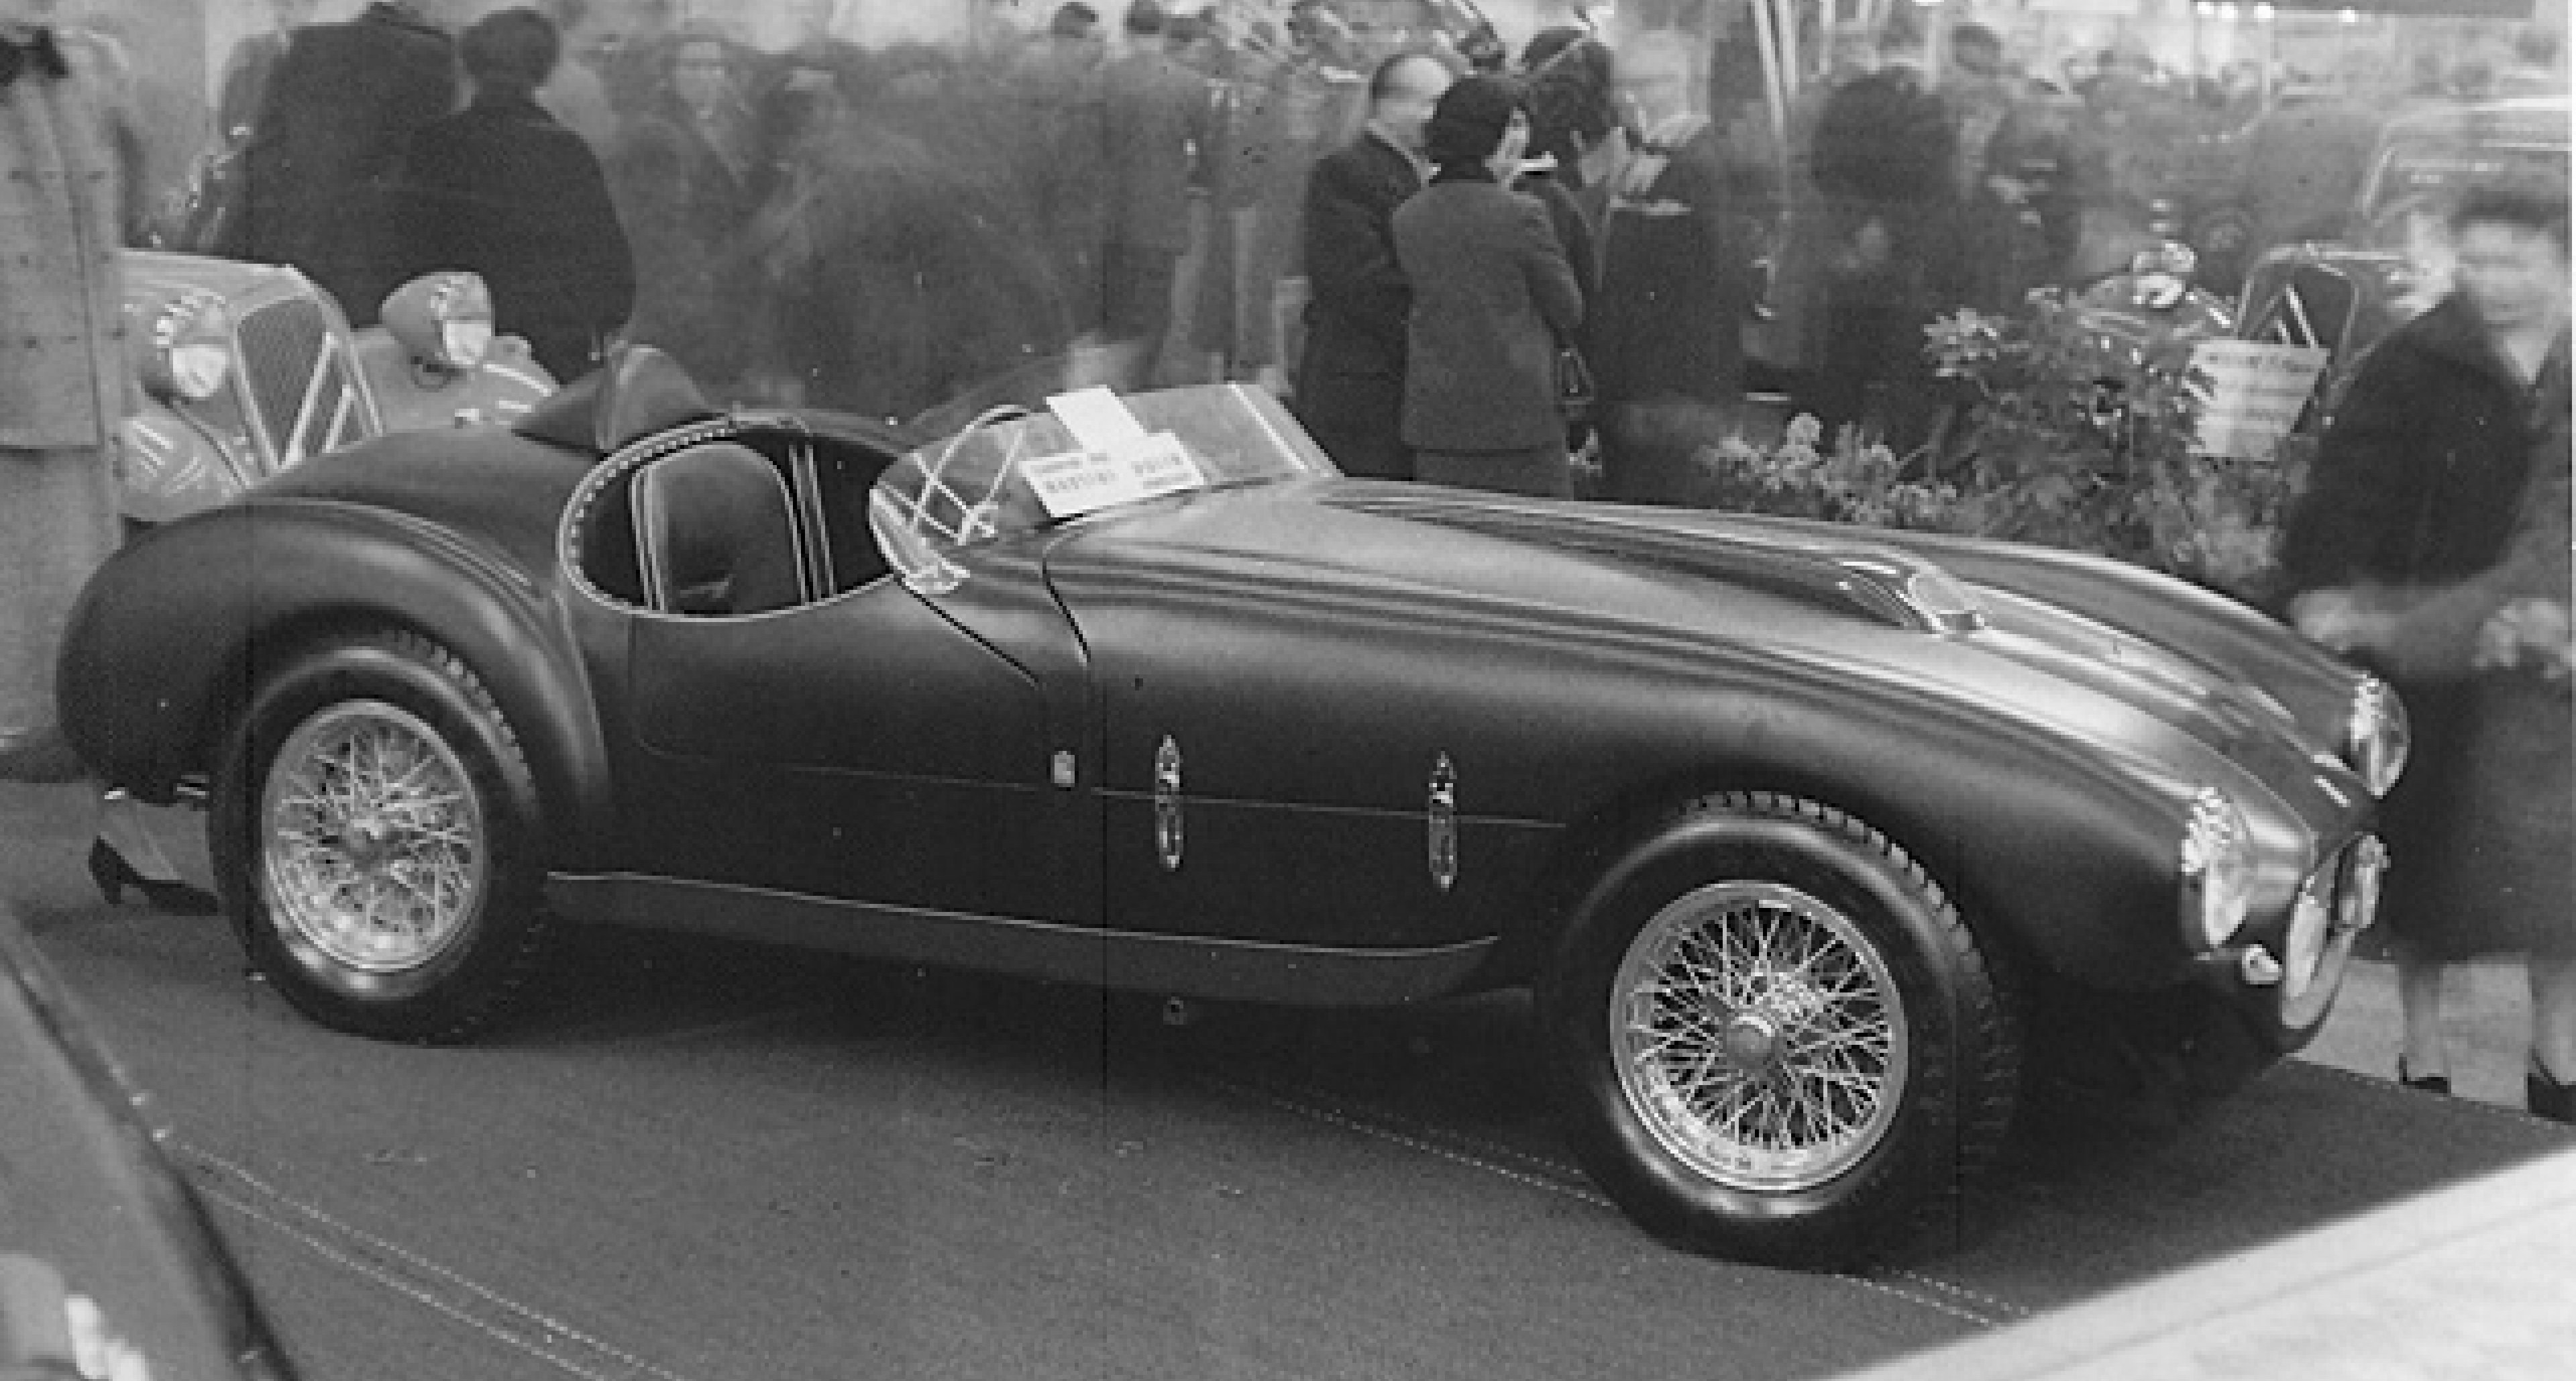 0300M at the 1955 Brussels Motor Show